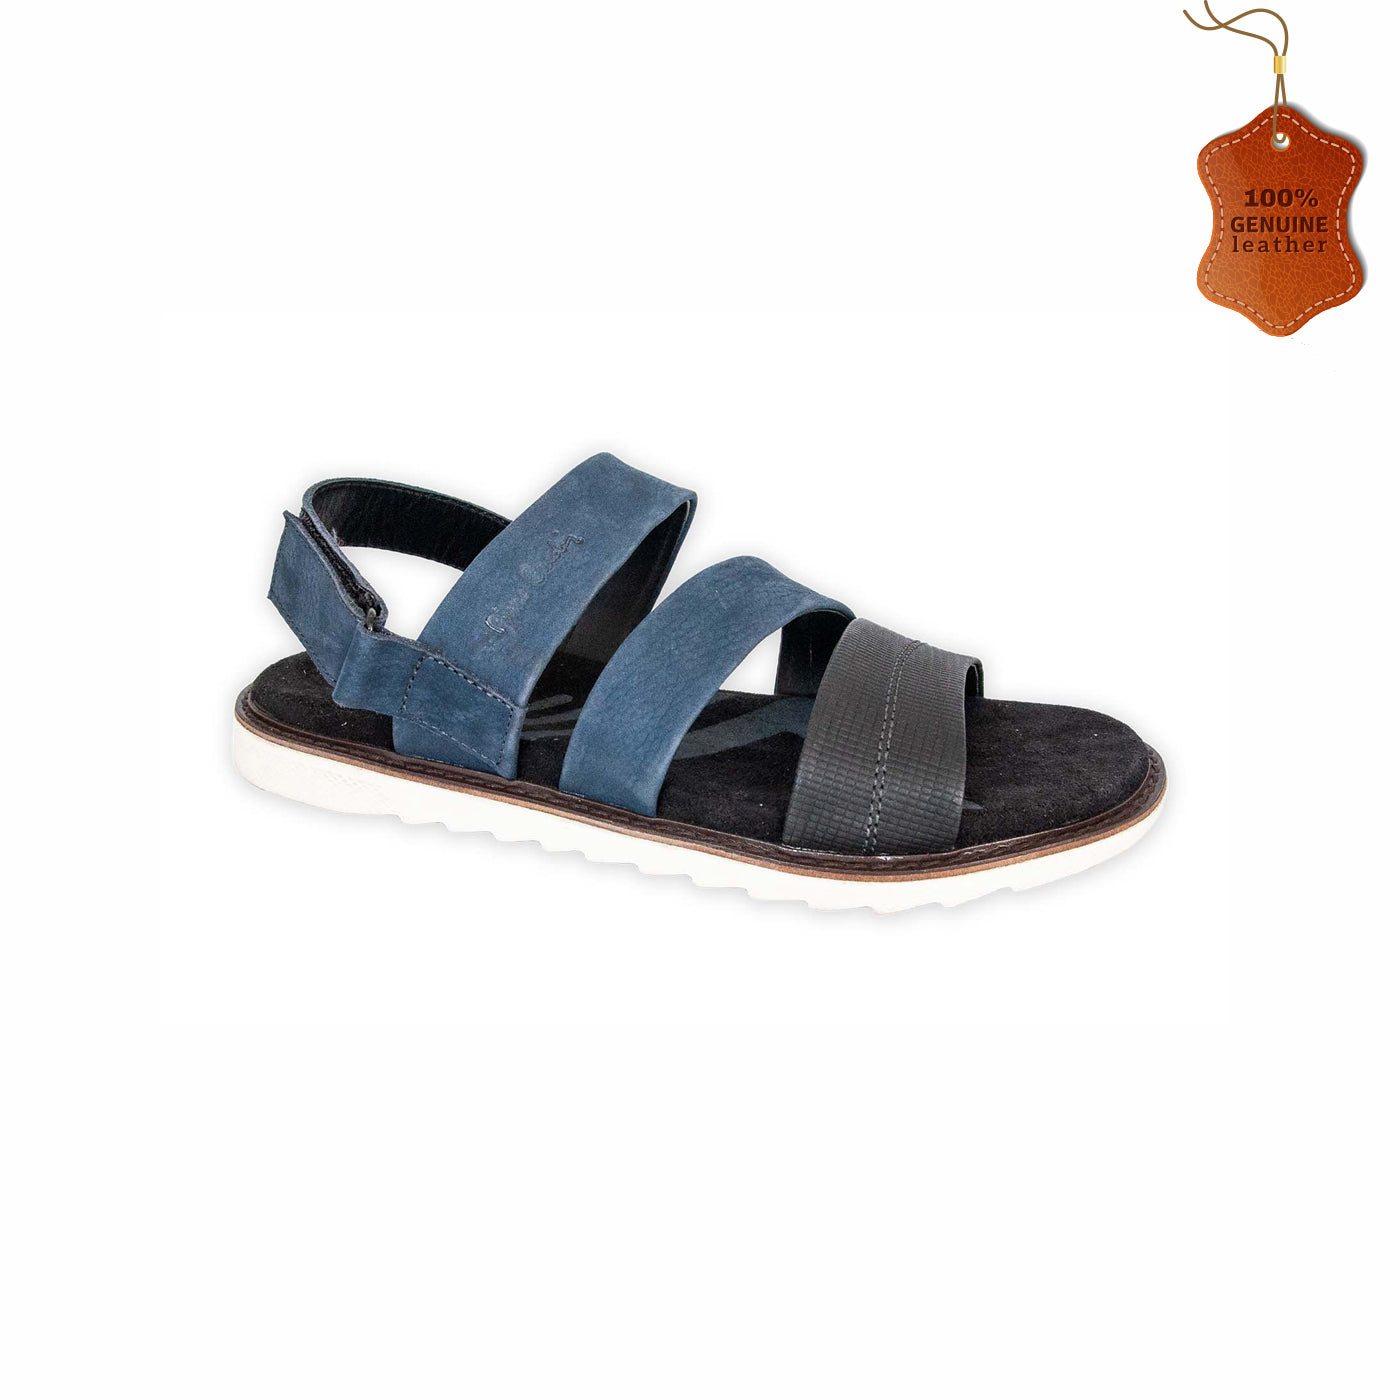 Comfy Mens Leather Sandals